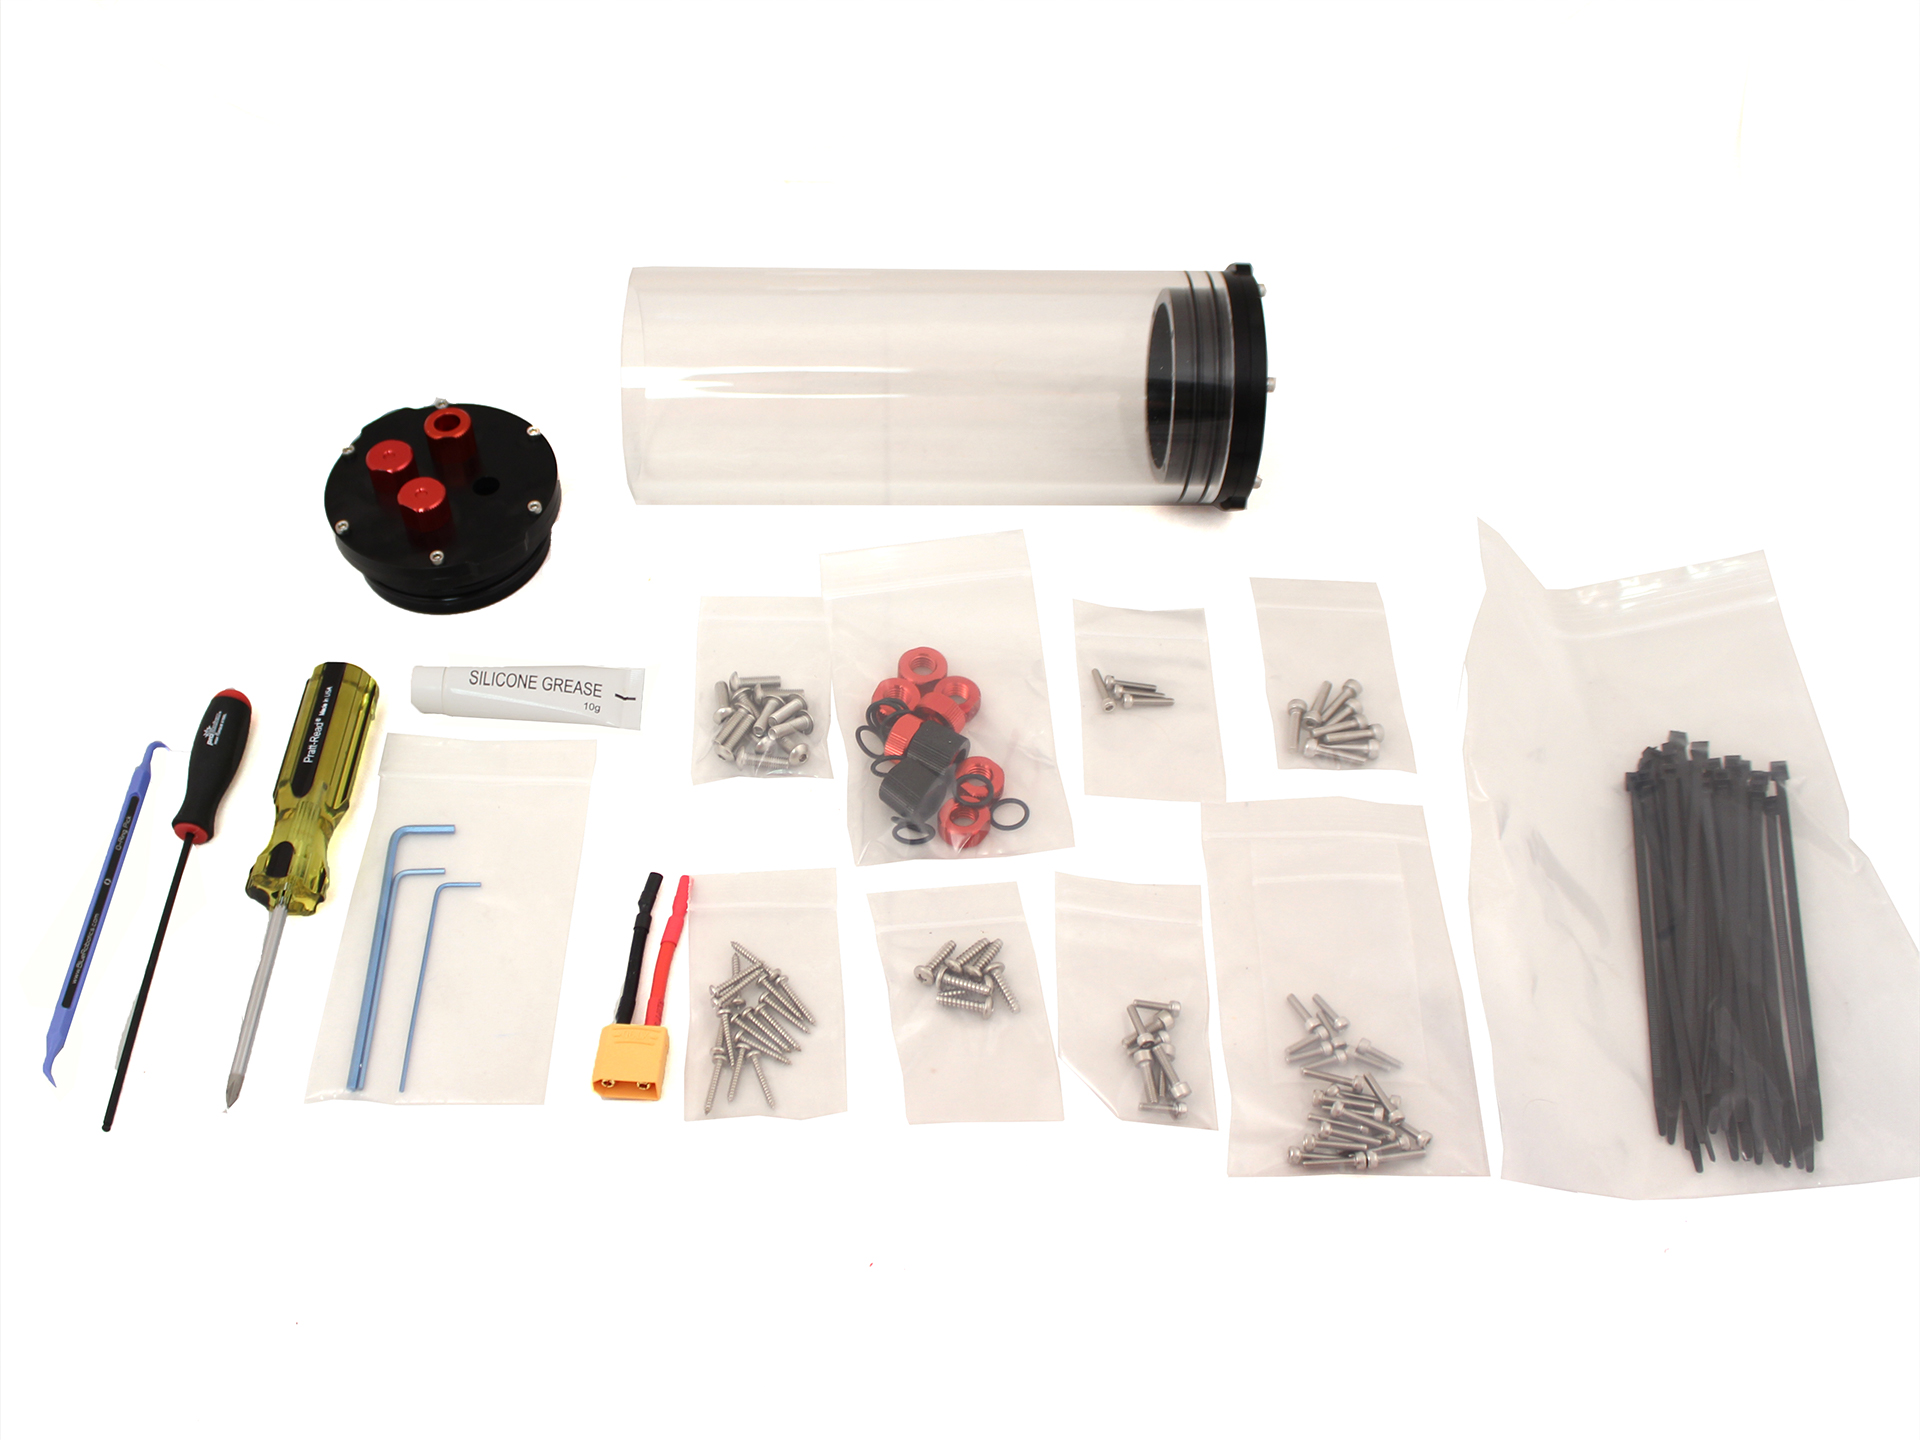 Bluerov2 Kit Assembly Pre March 2017 Wiring Diagram Hot Wire Foam Cutter Open The Battery Enclosure And Set Bags Inside Of It To Side Except For Bag With 4 M4x14 M3x12 Screws In